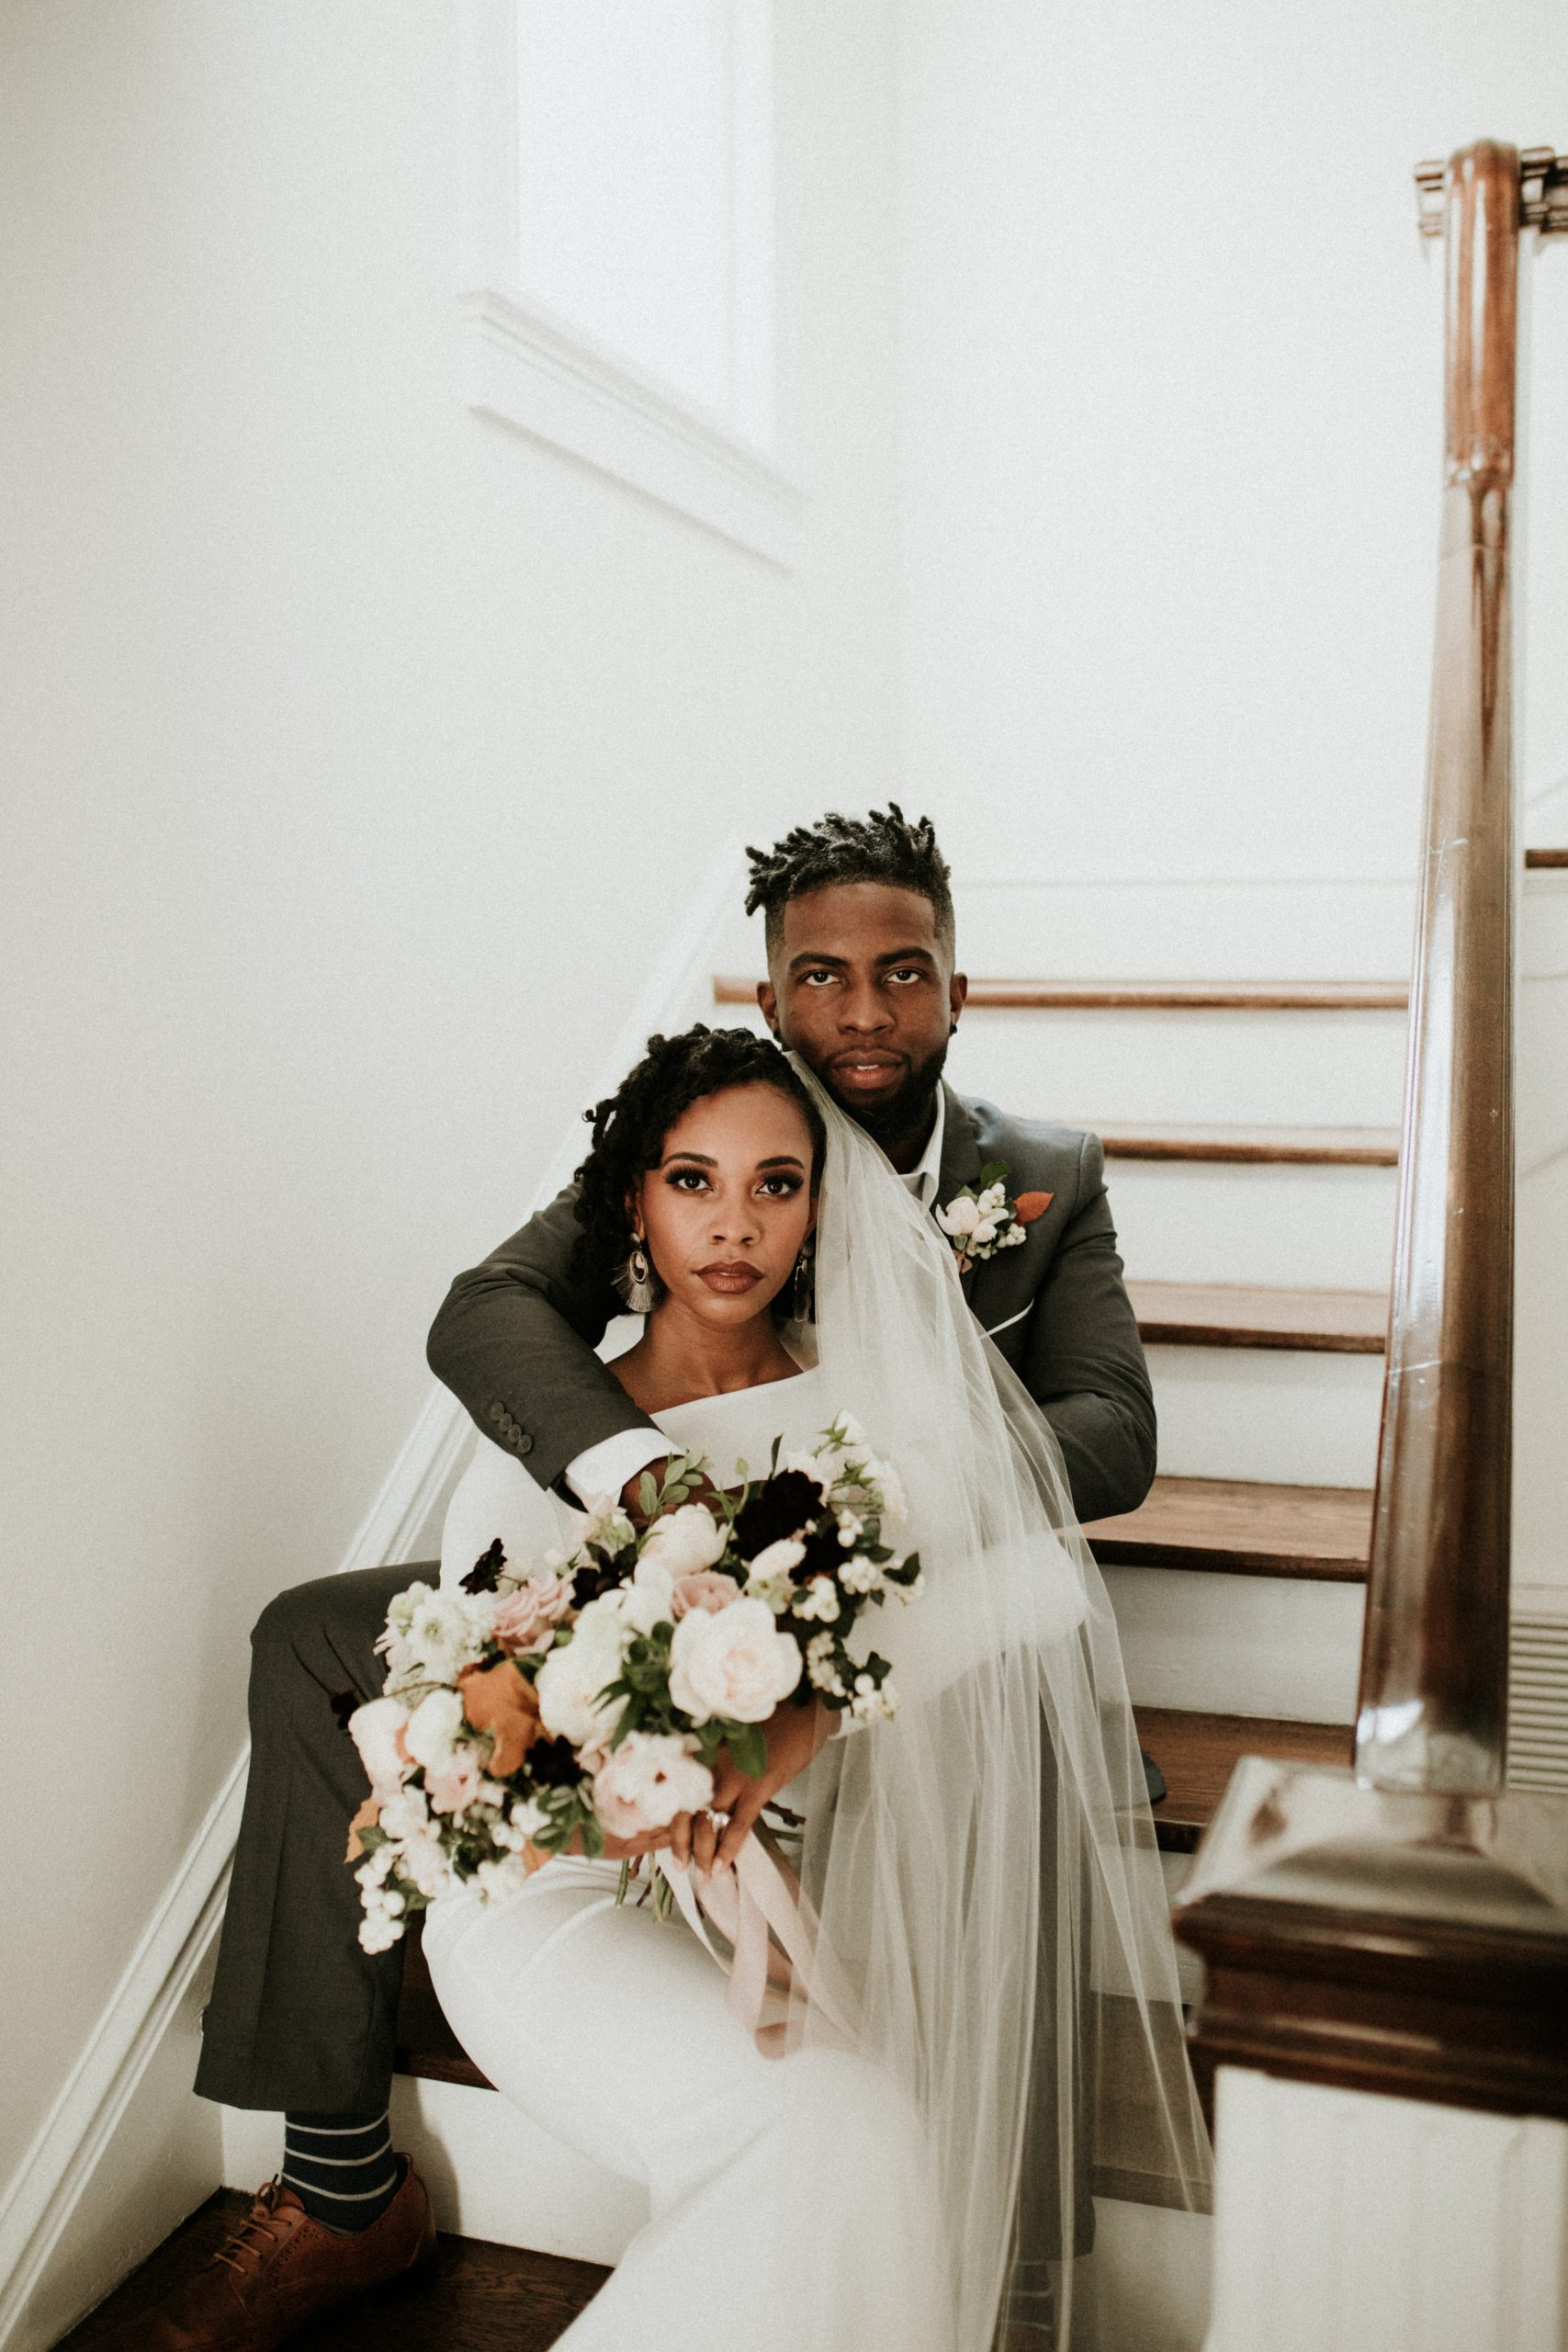 Bride and groom sitting on staircase.